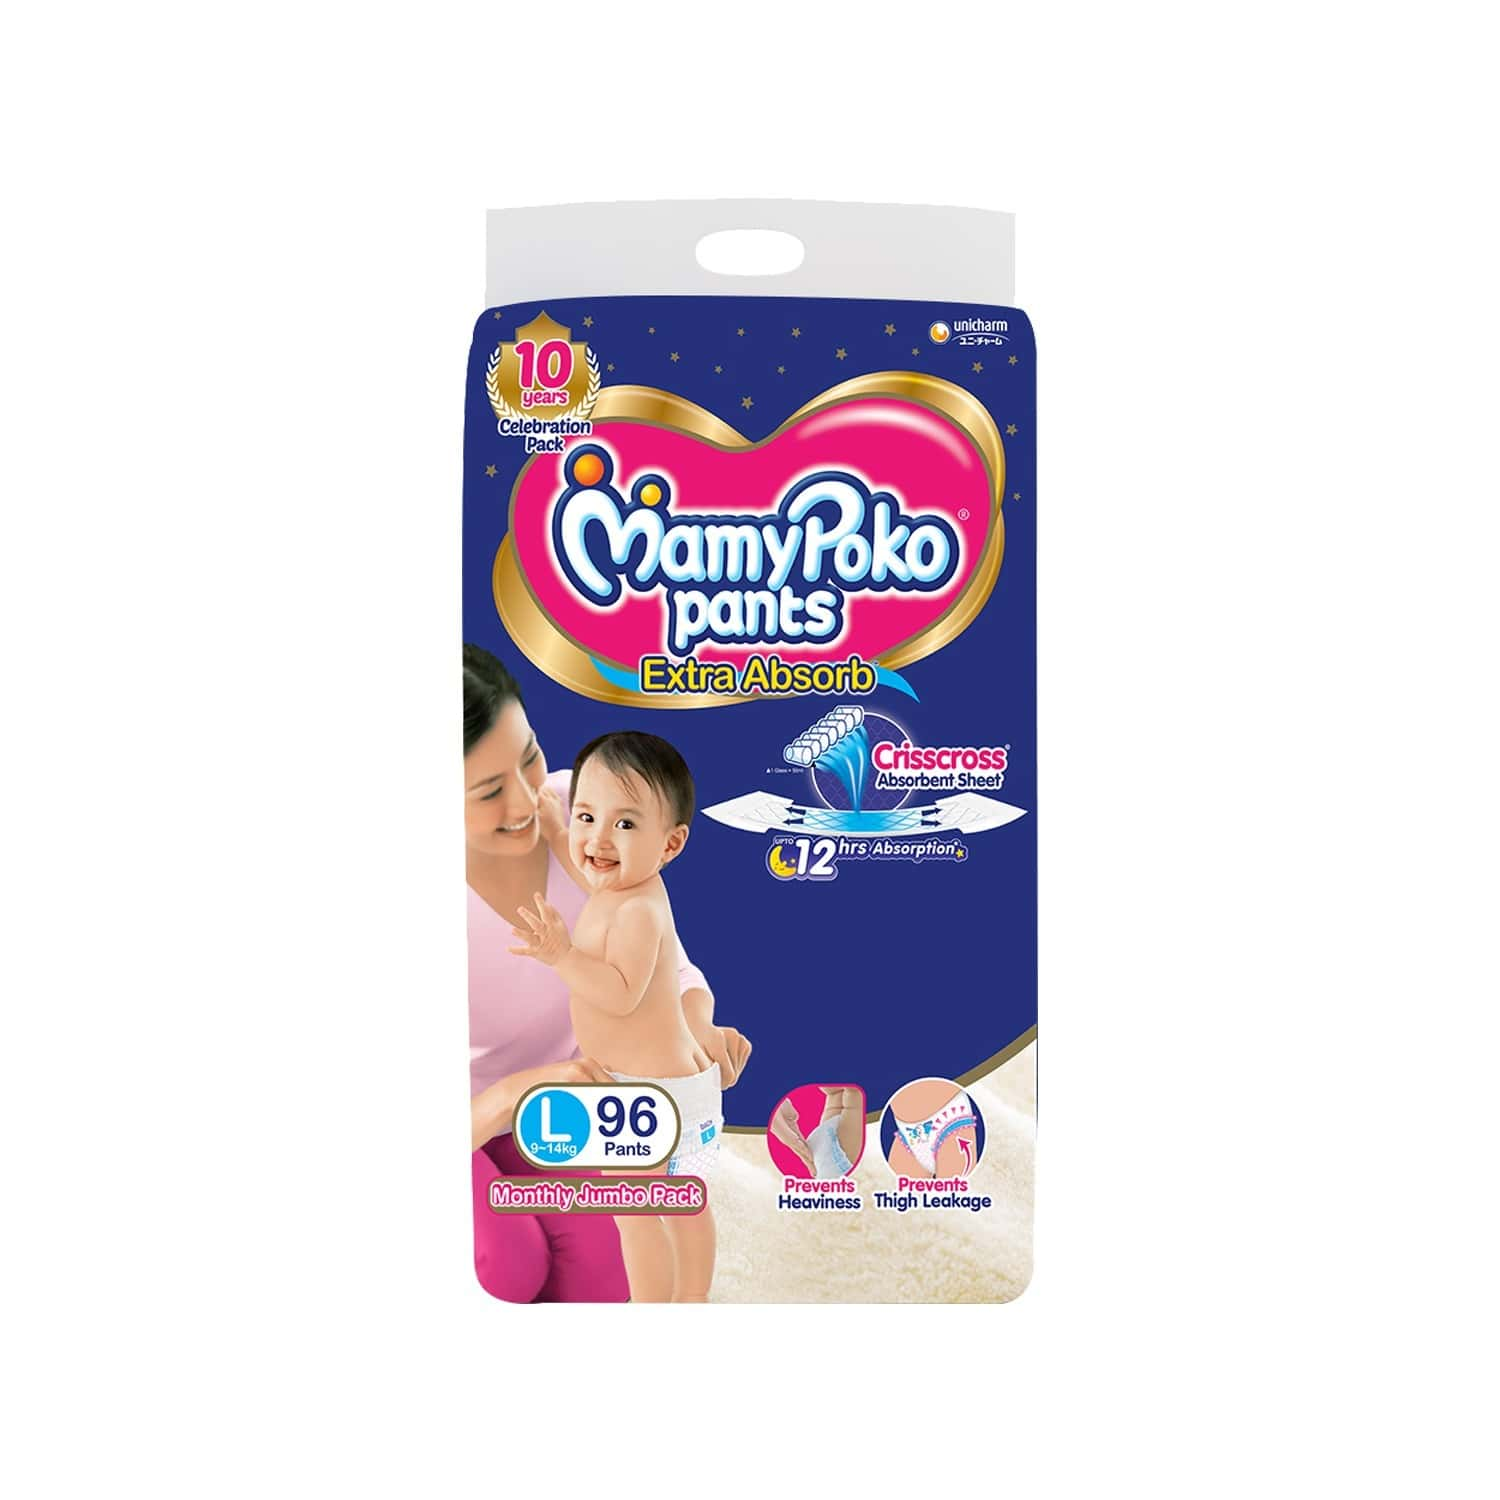 Mamypoko Pants Extra Absorb Diaper - Large Size, Pack Of 96 Diapers